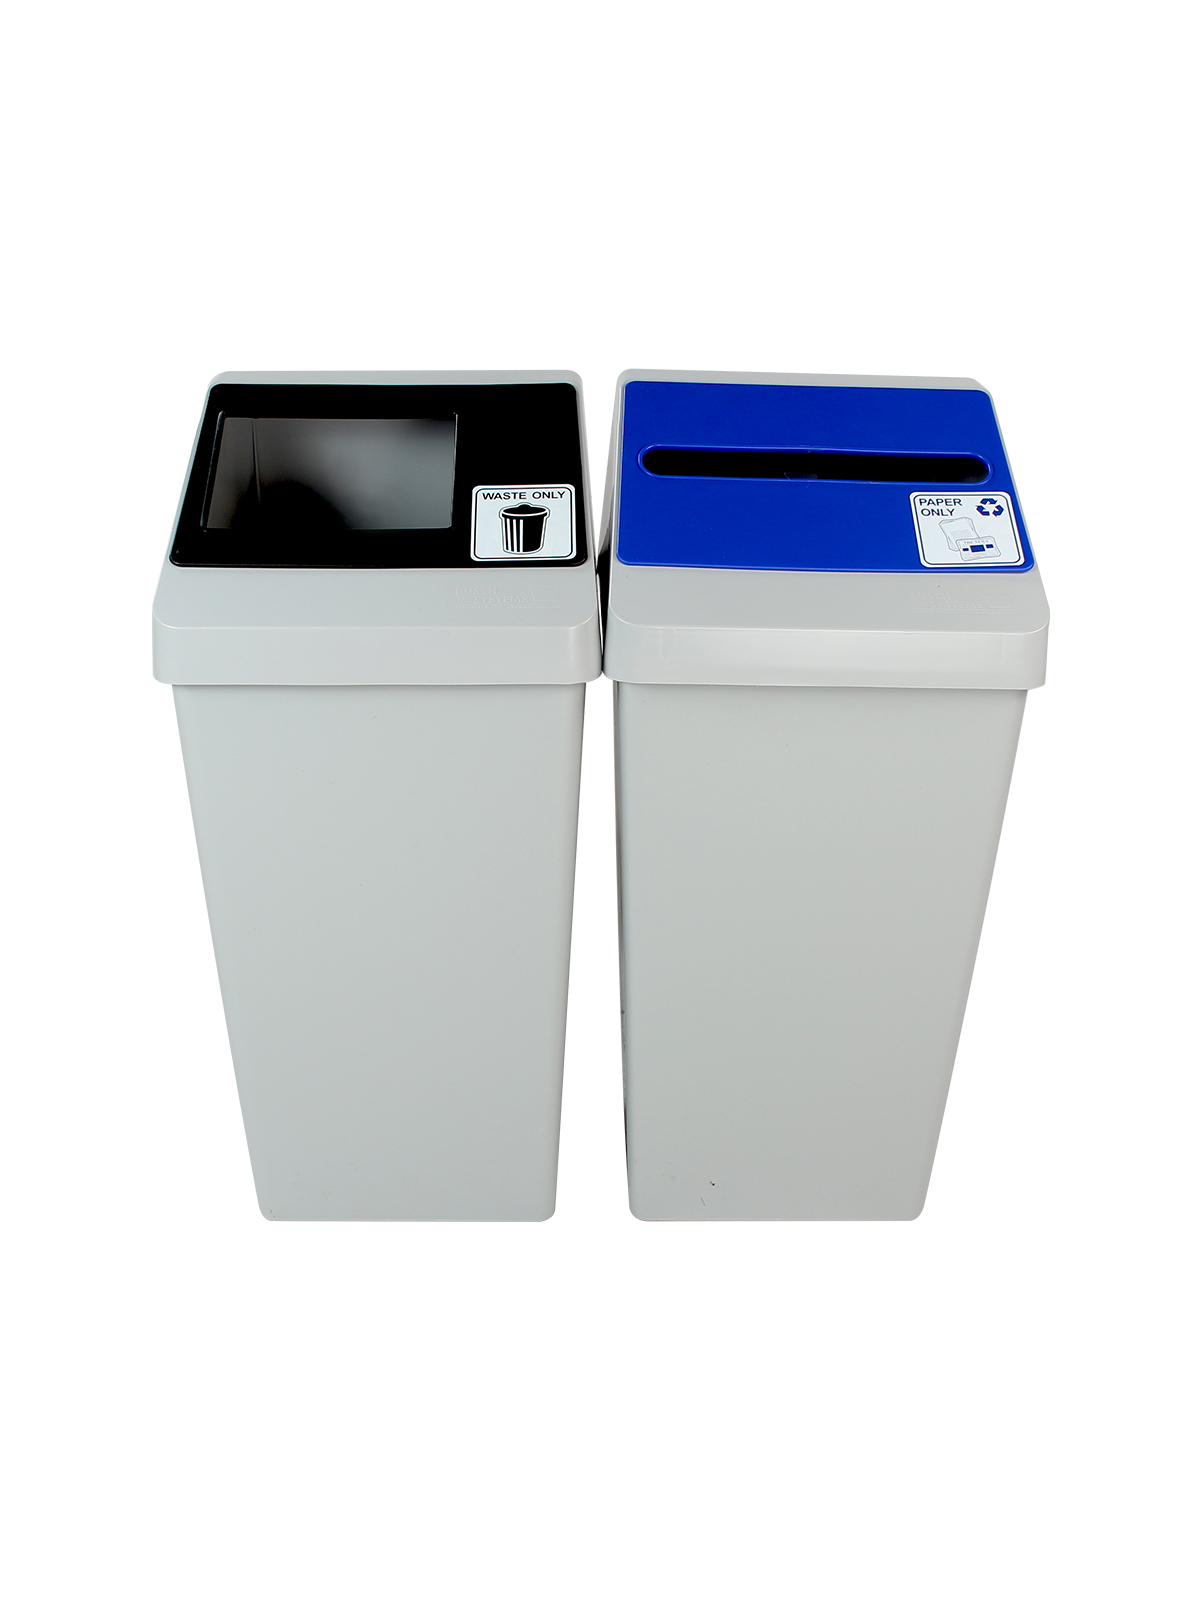 SMART SORT - DOUBLE - SLOT | FULL - GREY | BLUE |BLACK - PAPER ONLY | WASTE ONLY title=